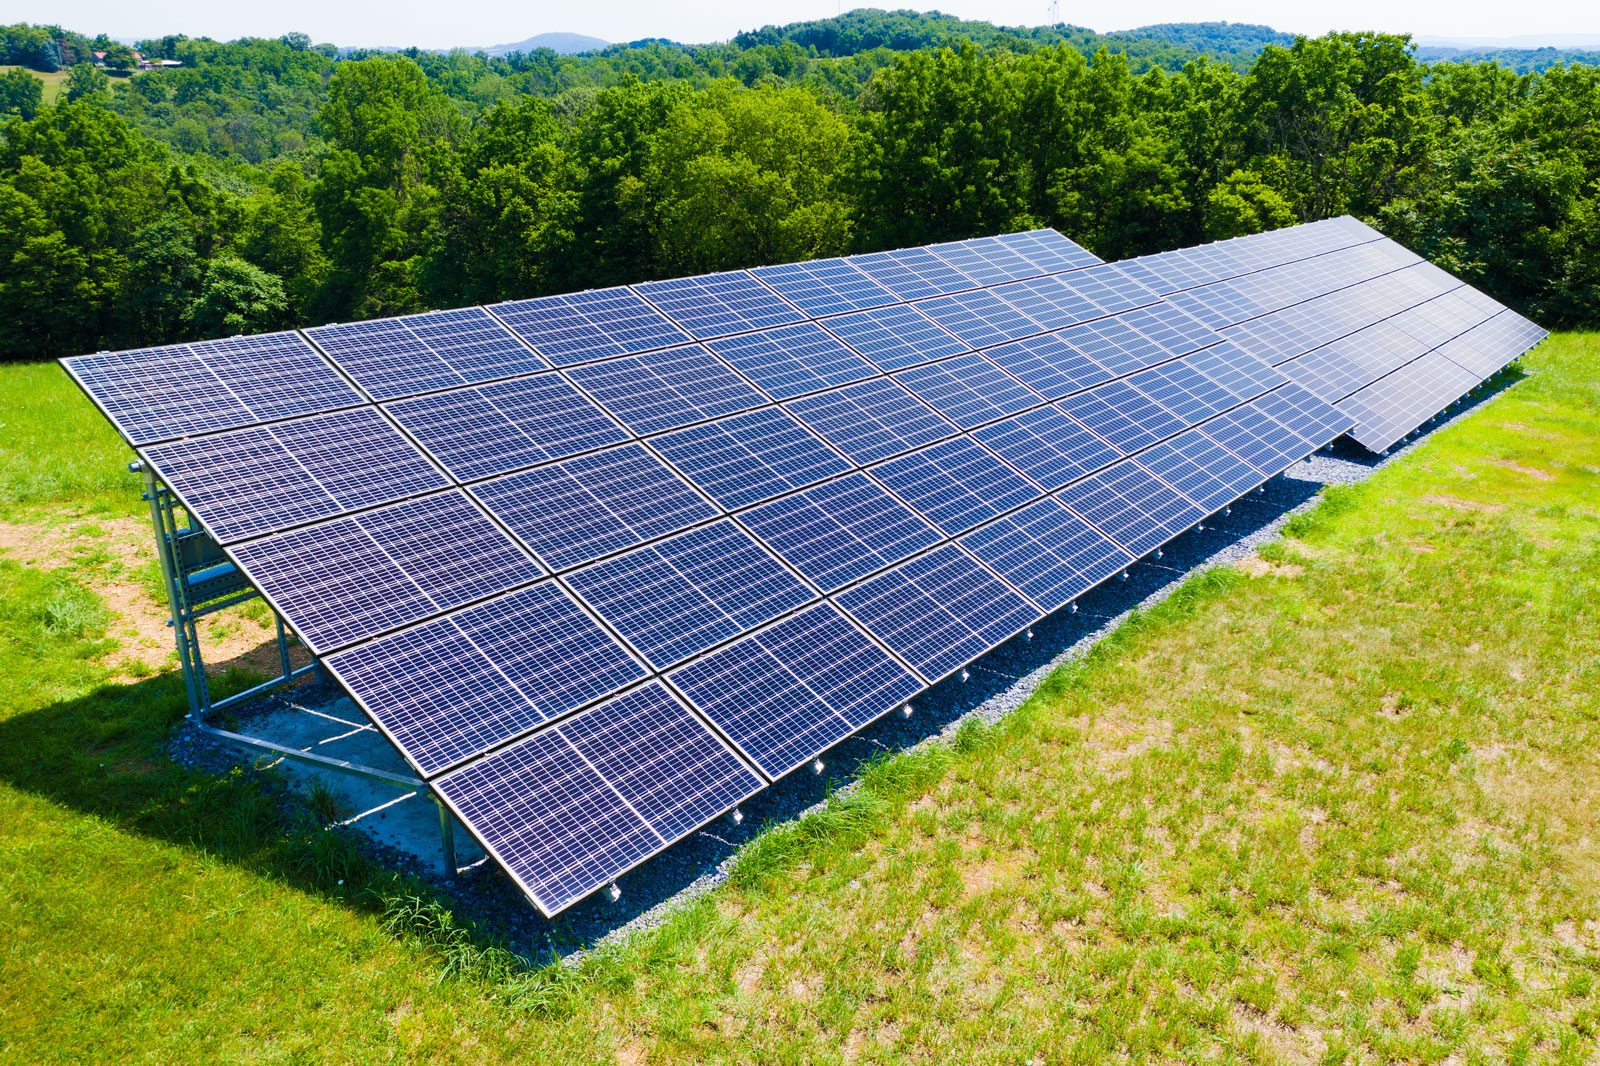 How much do solar panels cost, off grid solar system?